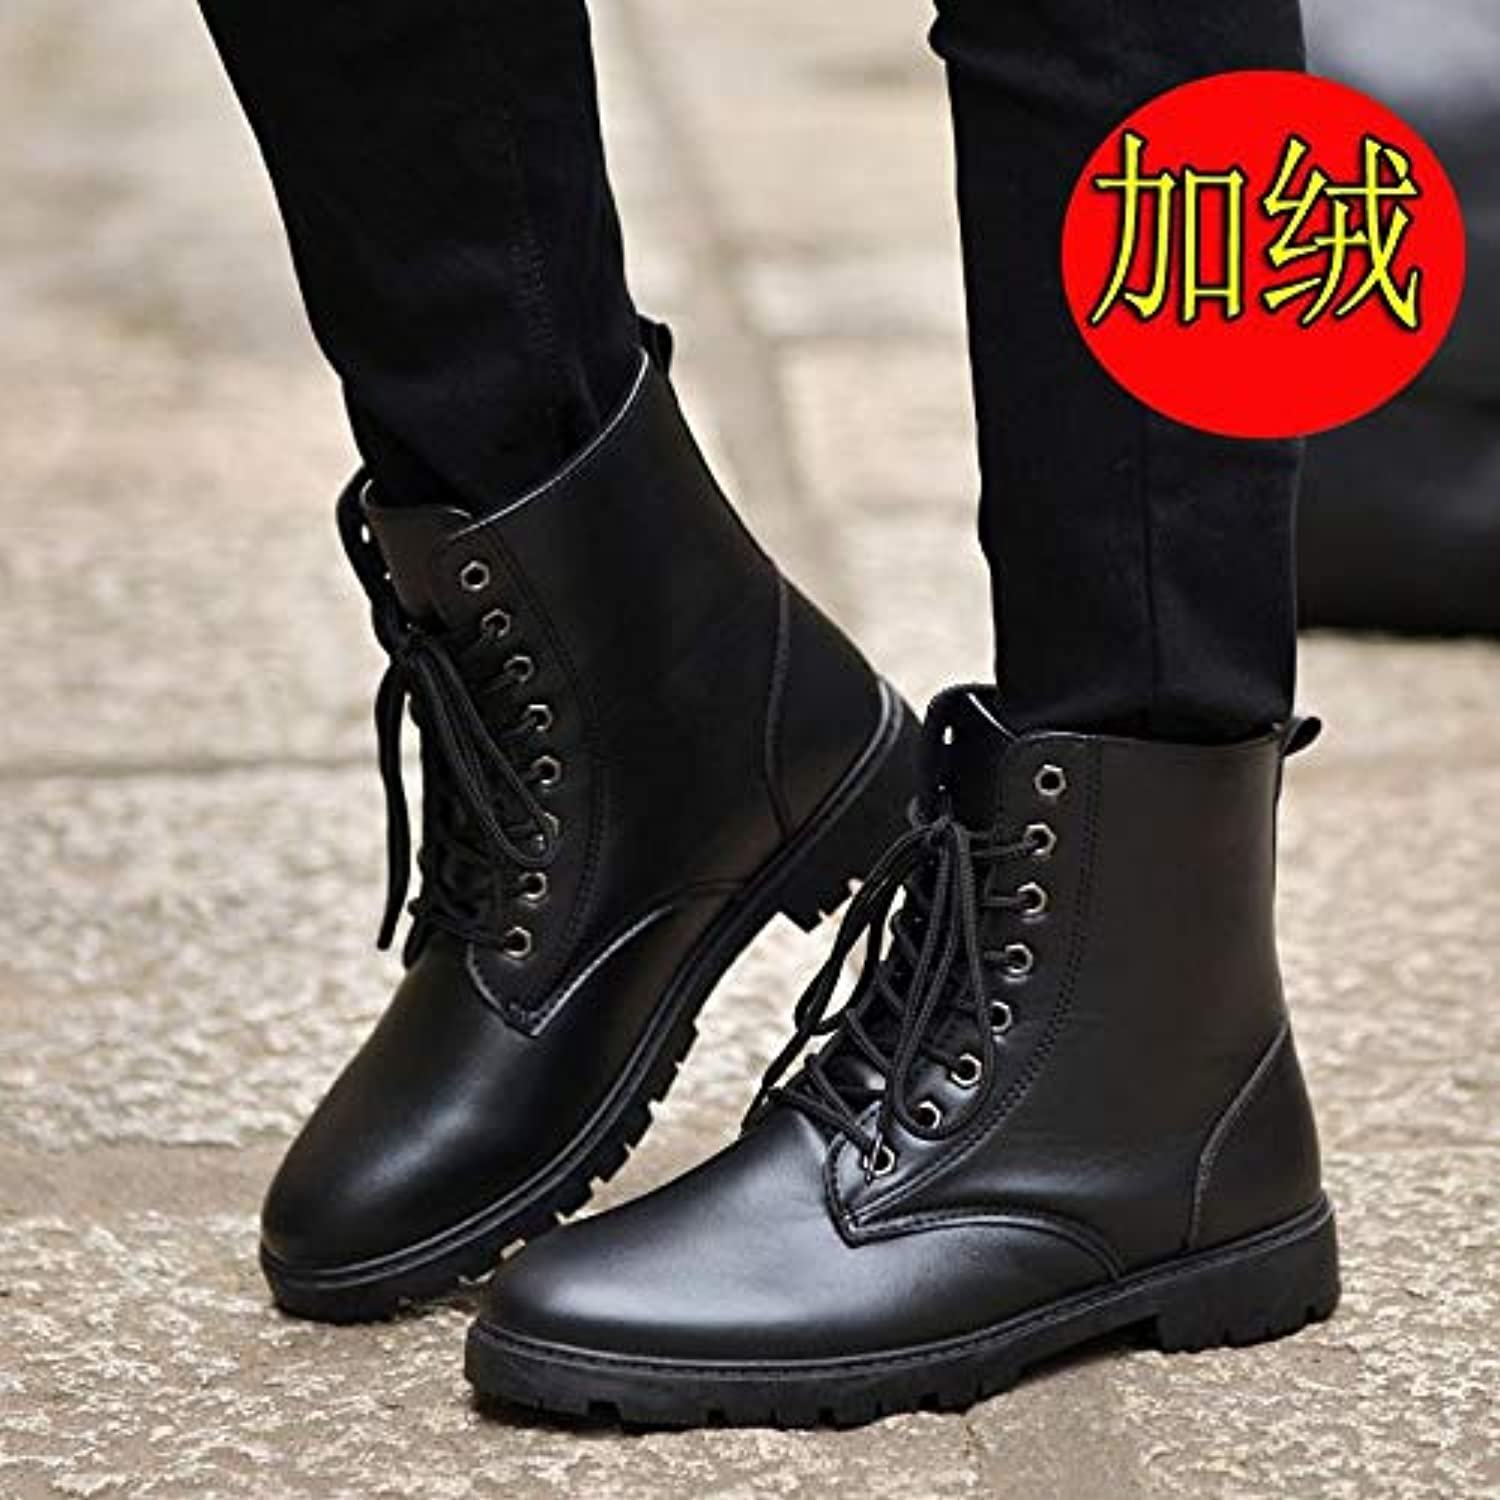 VXCZFS Outdoor boots Wild In The Middle Of A Single Boots In The Desert High To Help Winter Outdoor Boots Cotton shoes Waterproof Men'S Boots British Retro In The Tube Boots, 42, Black Cotton Boots